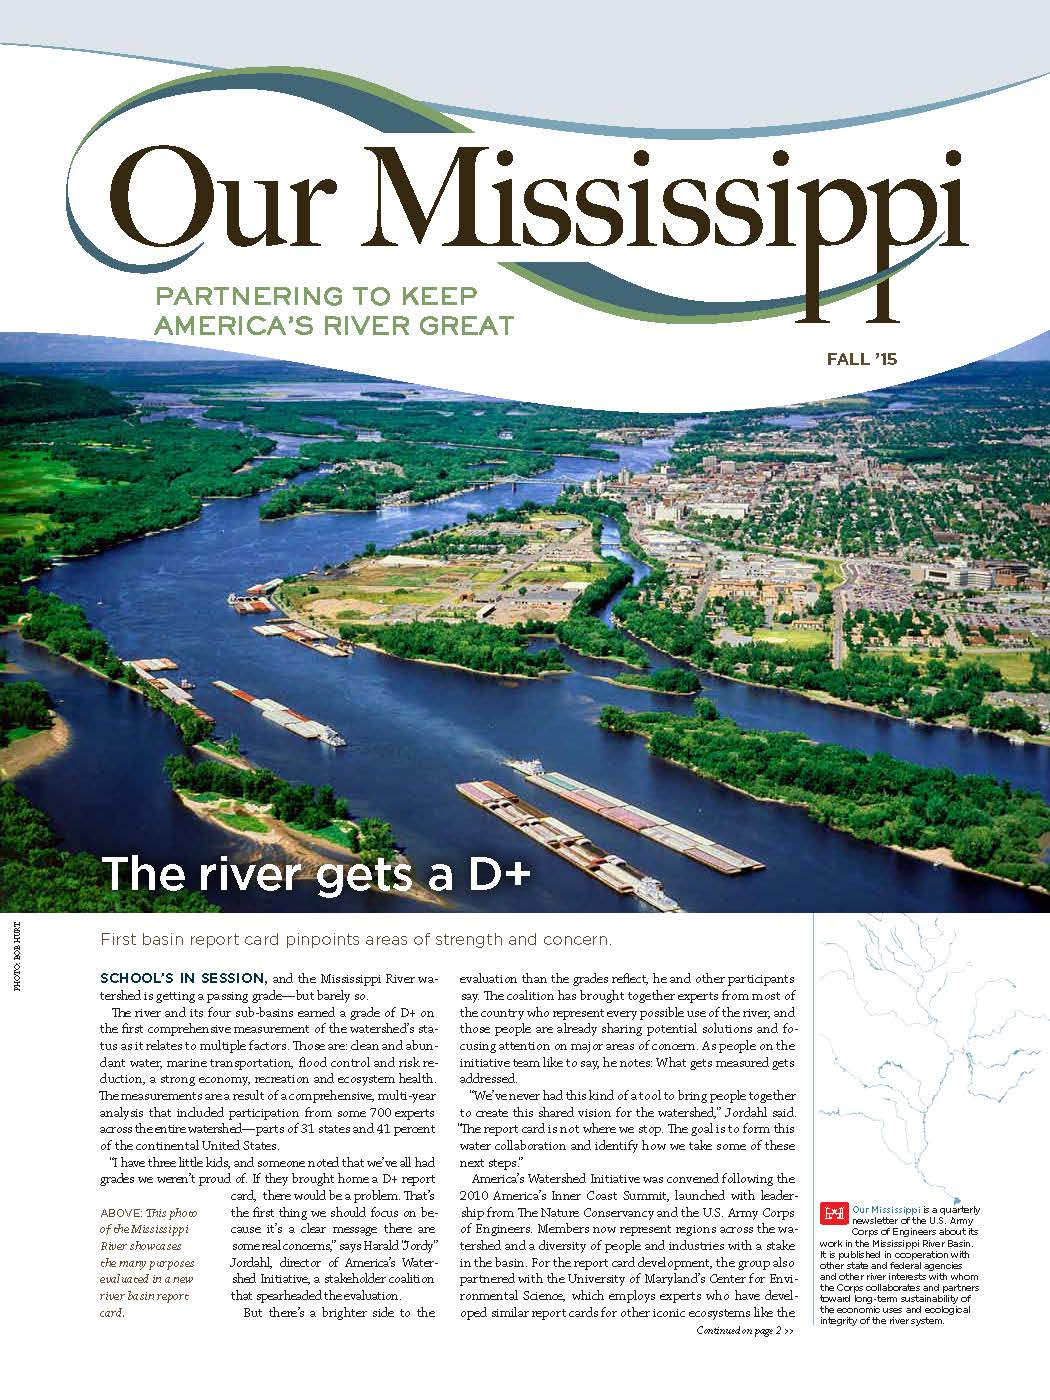 Fall 2015 issue of Our Mississippi.